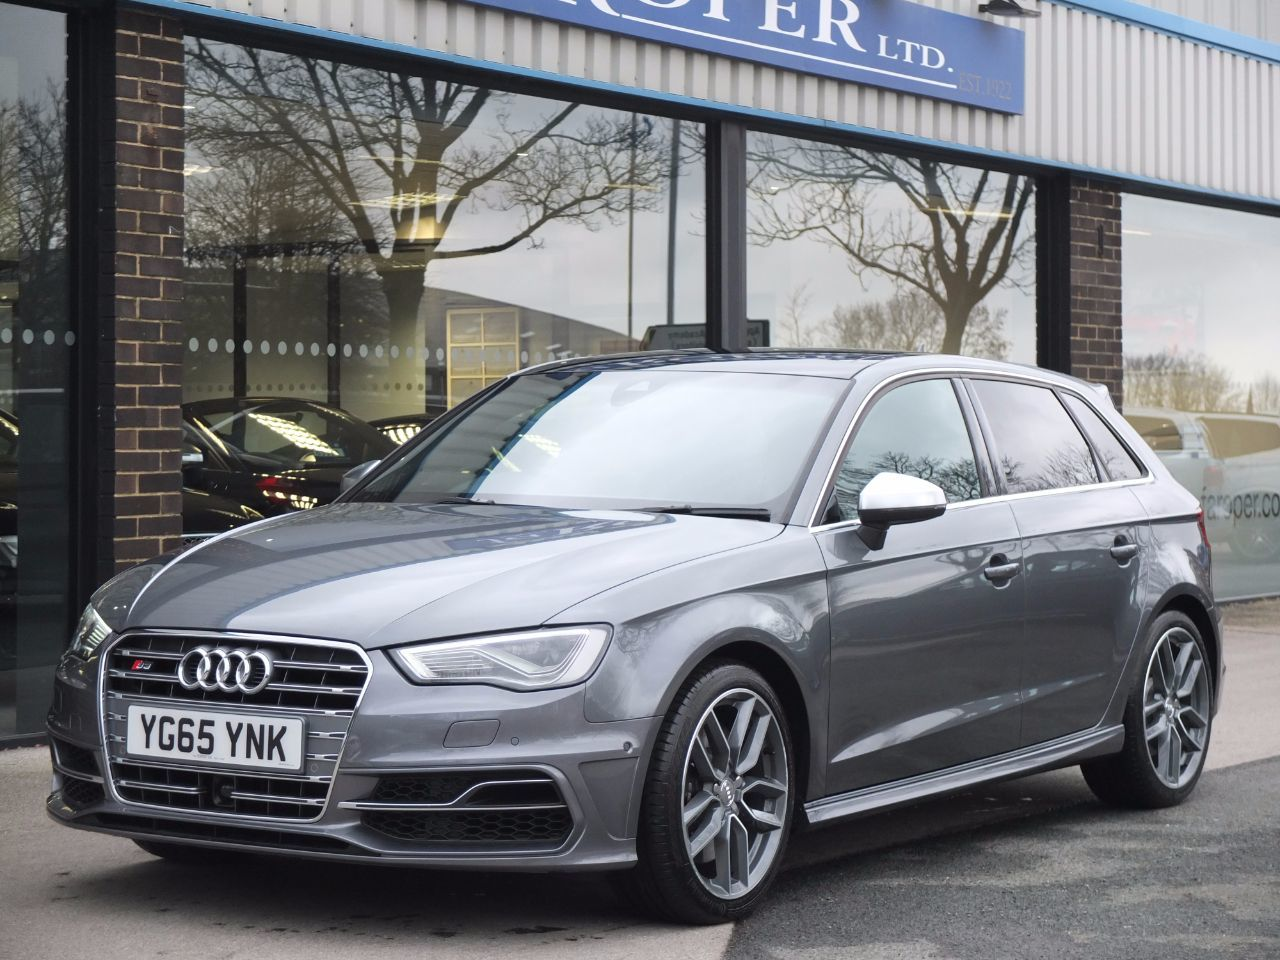 Audi A3 S3 2.0 TFSI quattro Sportback 300ps S Tronic Hatchback Petrol Monsoon Grey MetallicAudi A3 S3 2.0 TFSI quattro Sportback 300ps S Tronic Hatchback Petrol Monsoon Grey Metallic at fa Roper Ltd Bradford